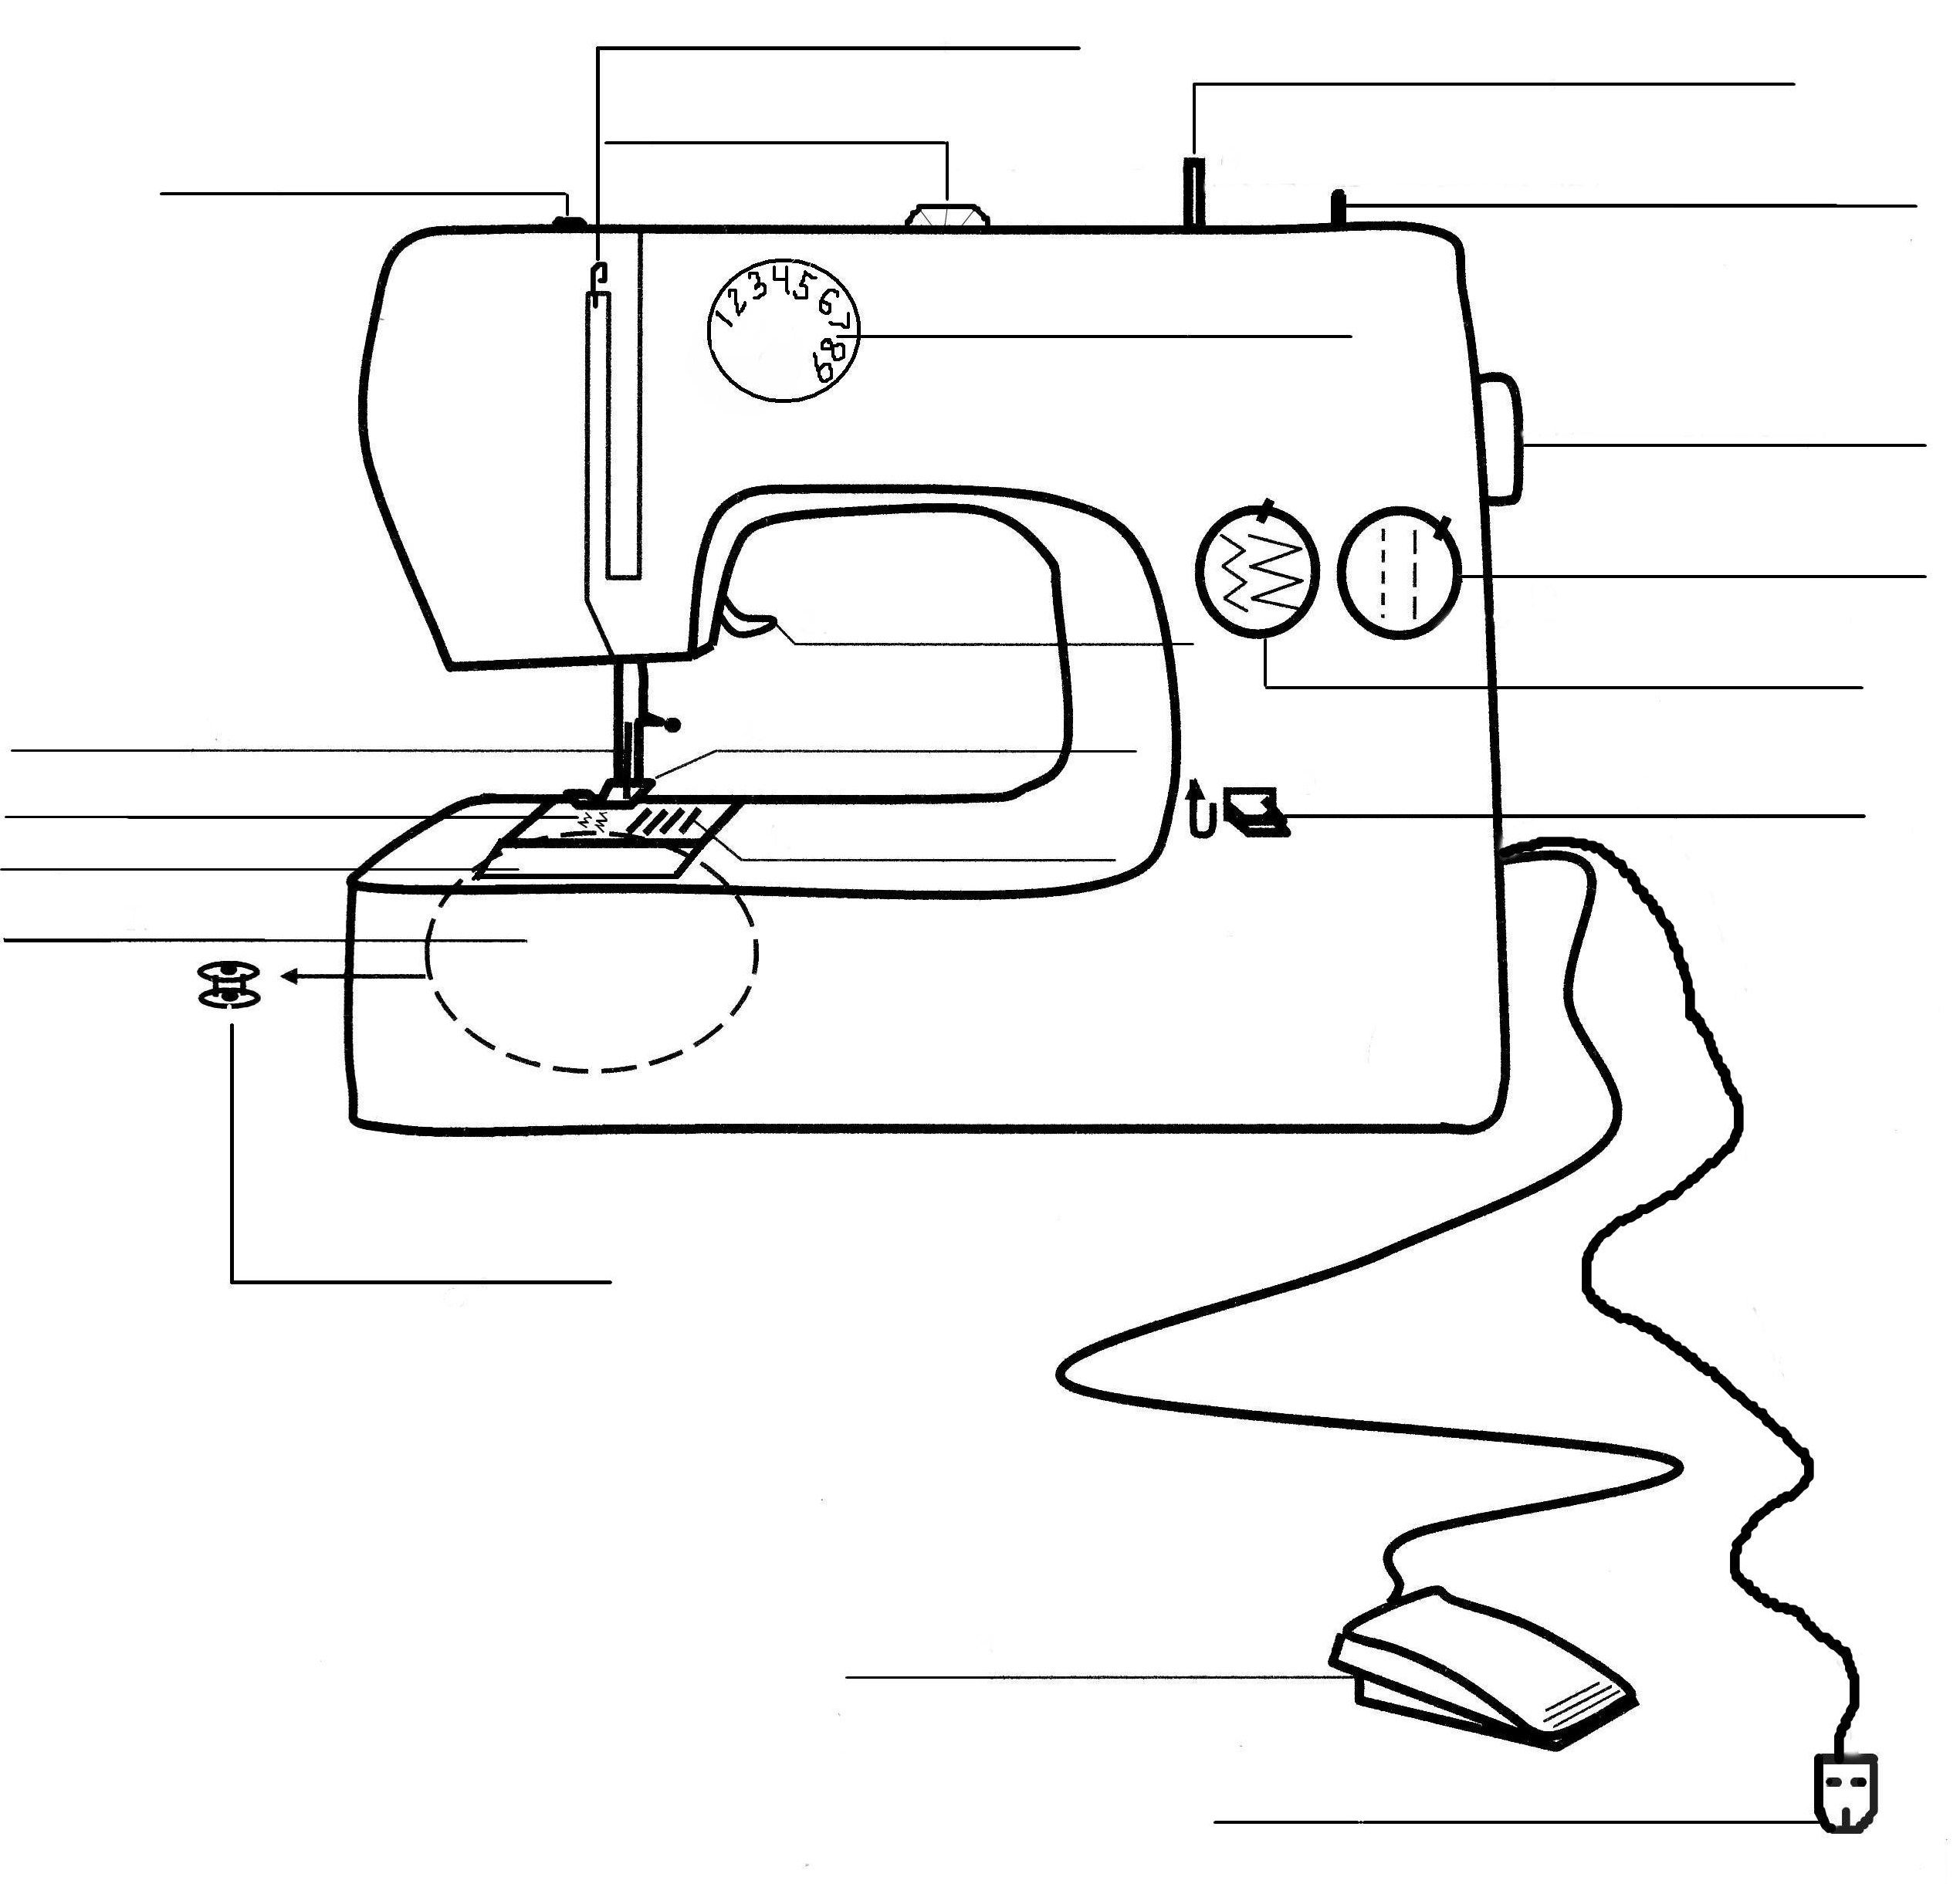 Fill in the blank sewing machine parts | AAA EMBROIDERY ...